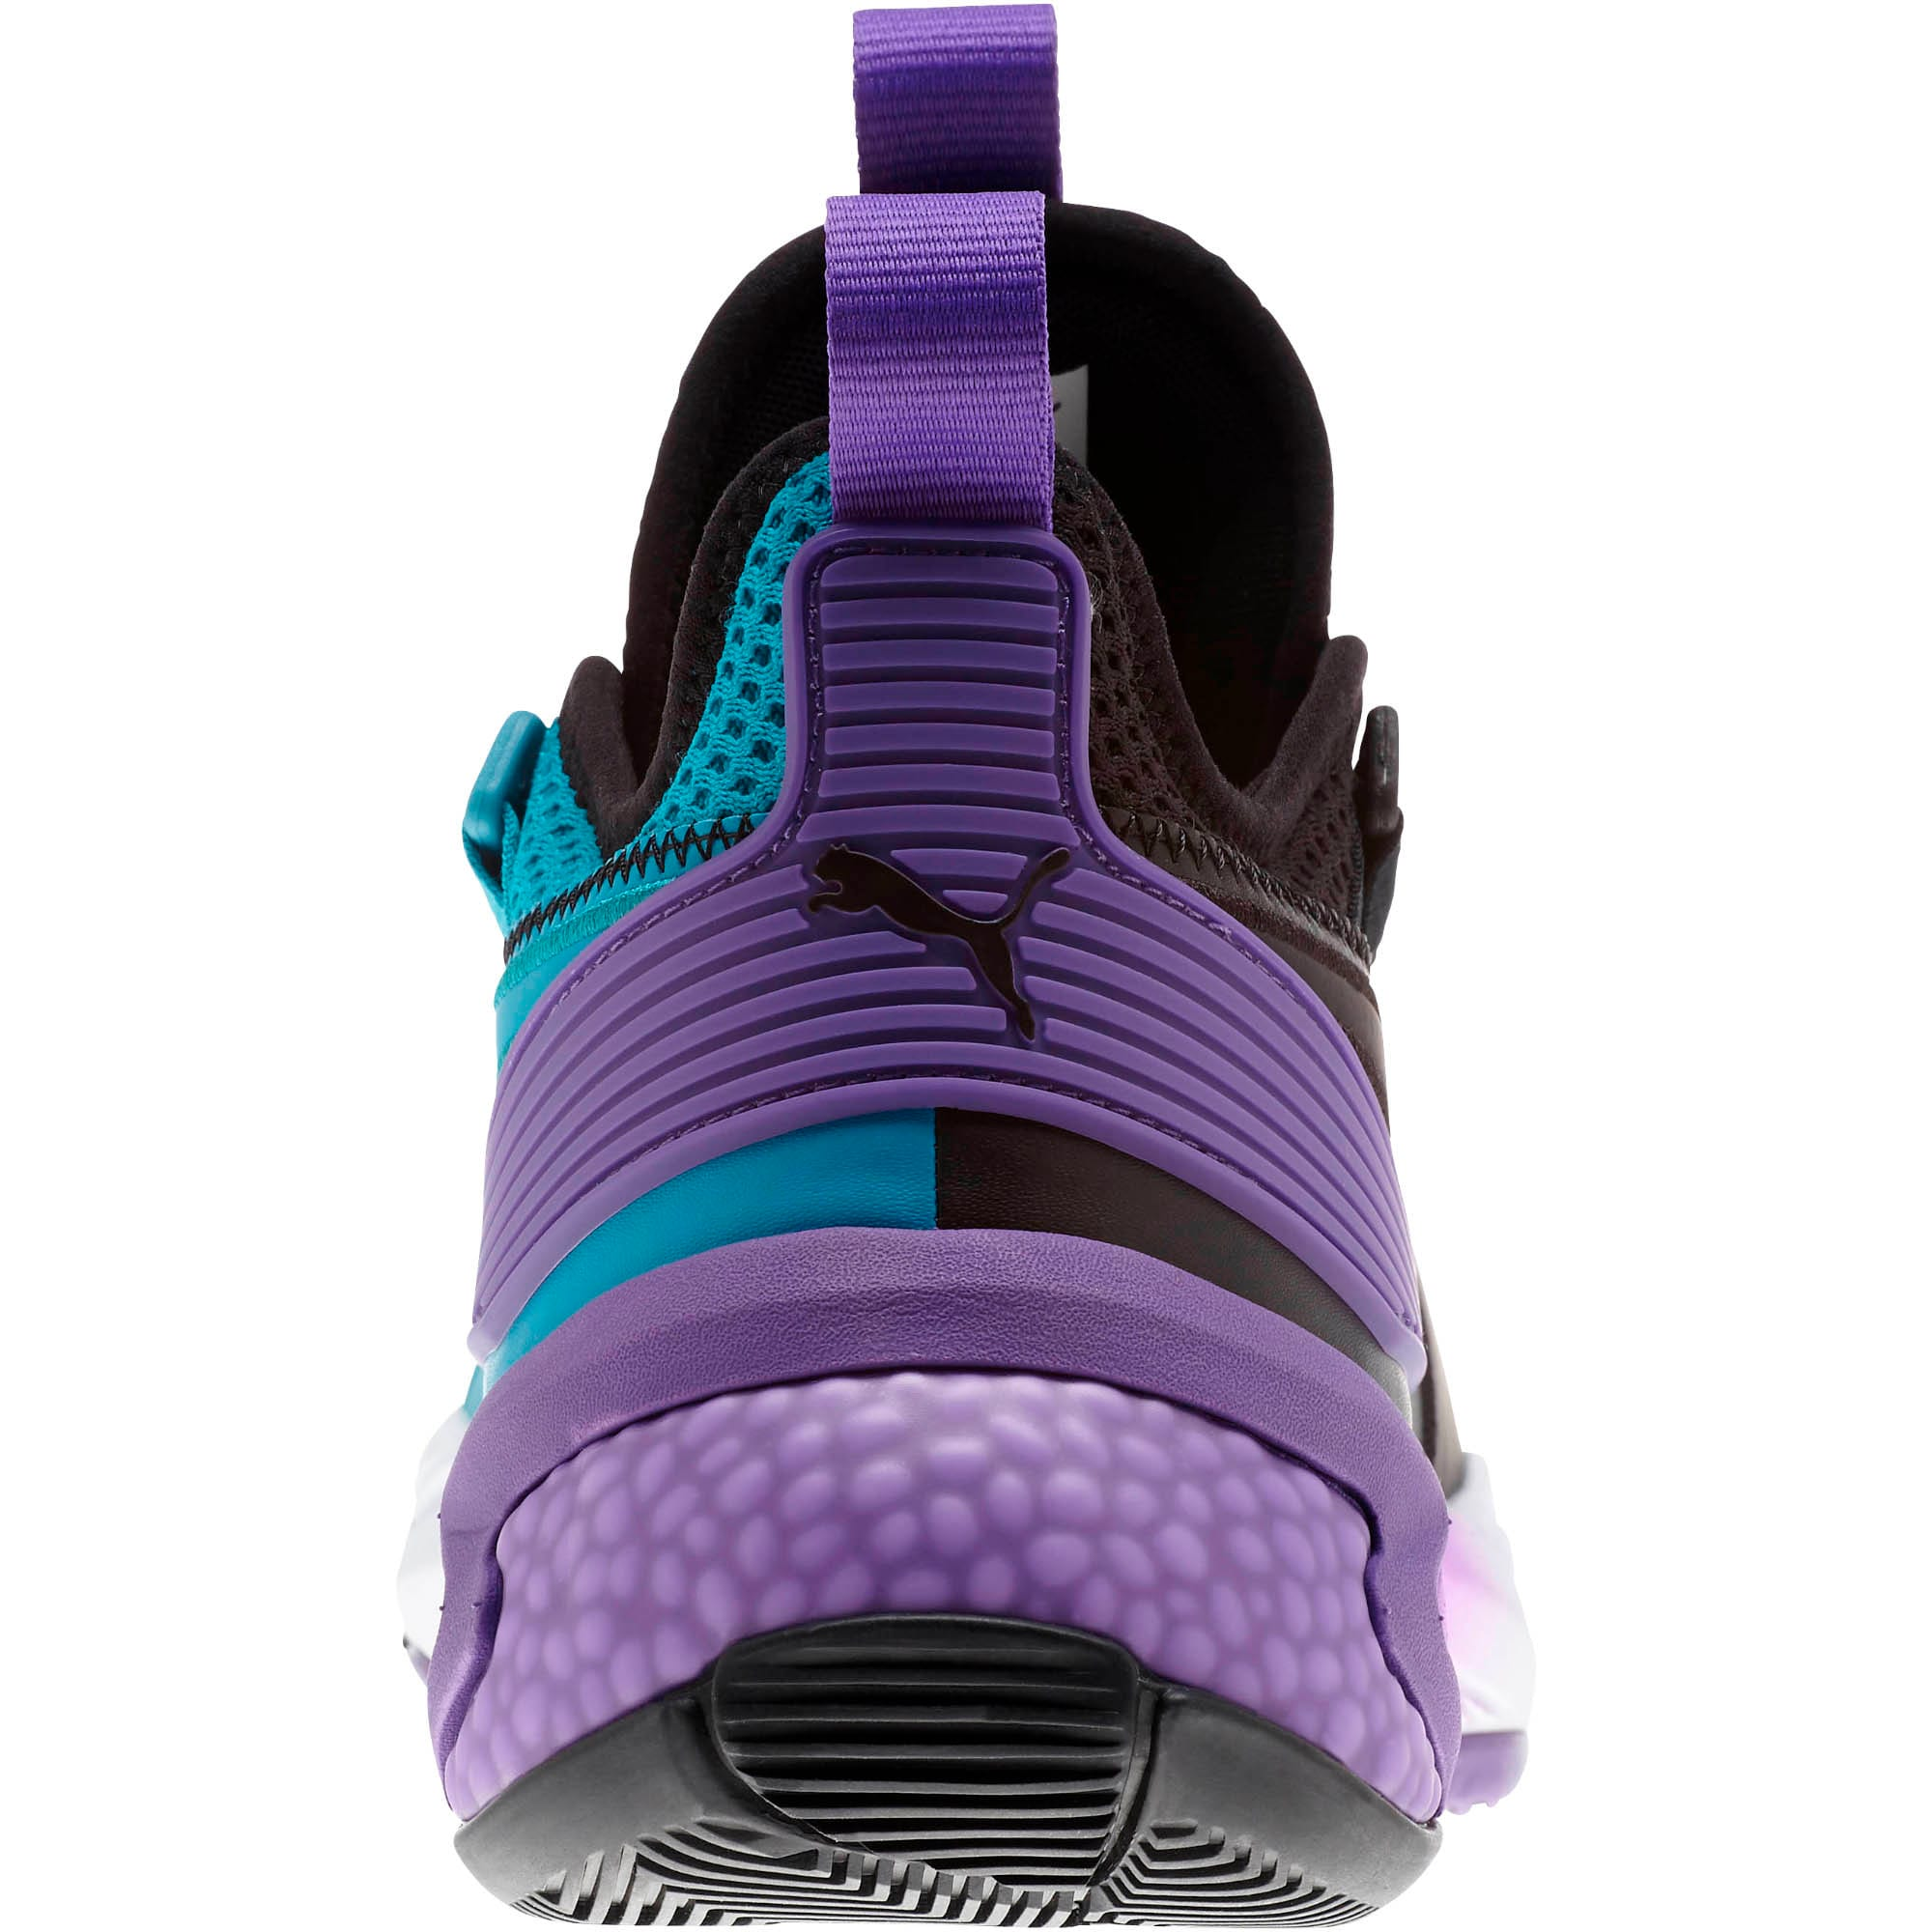 Thumbnail 3 of Uproar Charlotte ASG Fade Basketball Shoes, Orange- PURPLE, medium